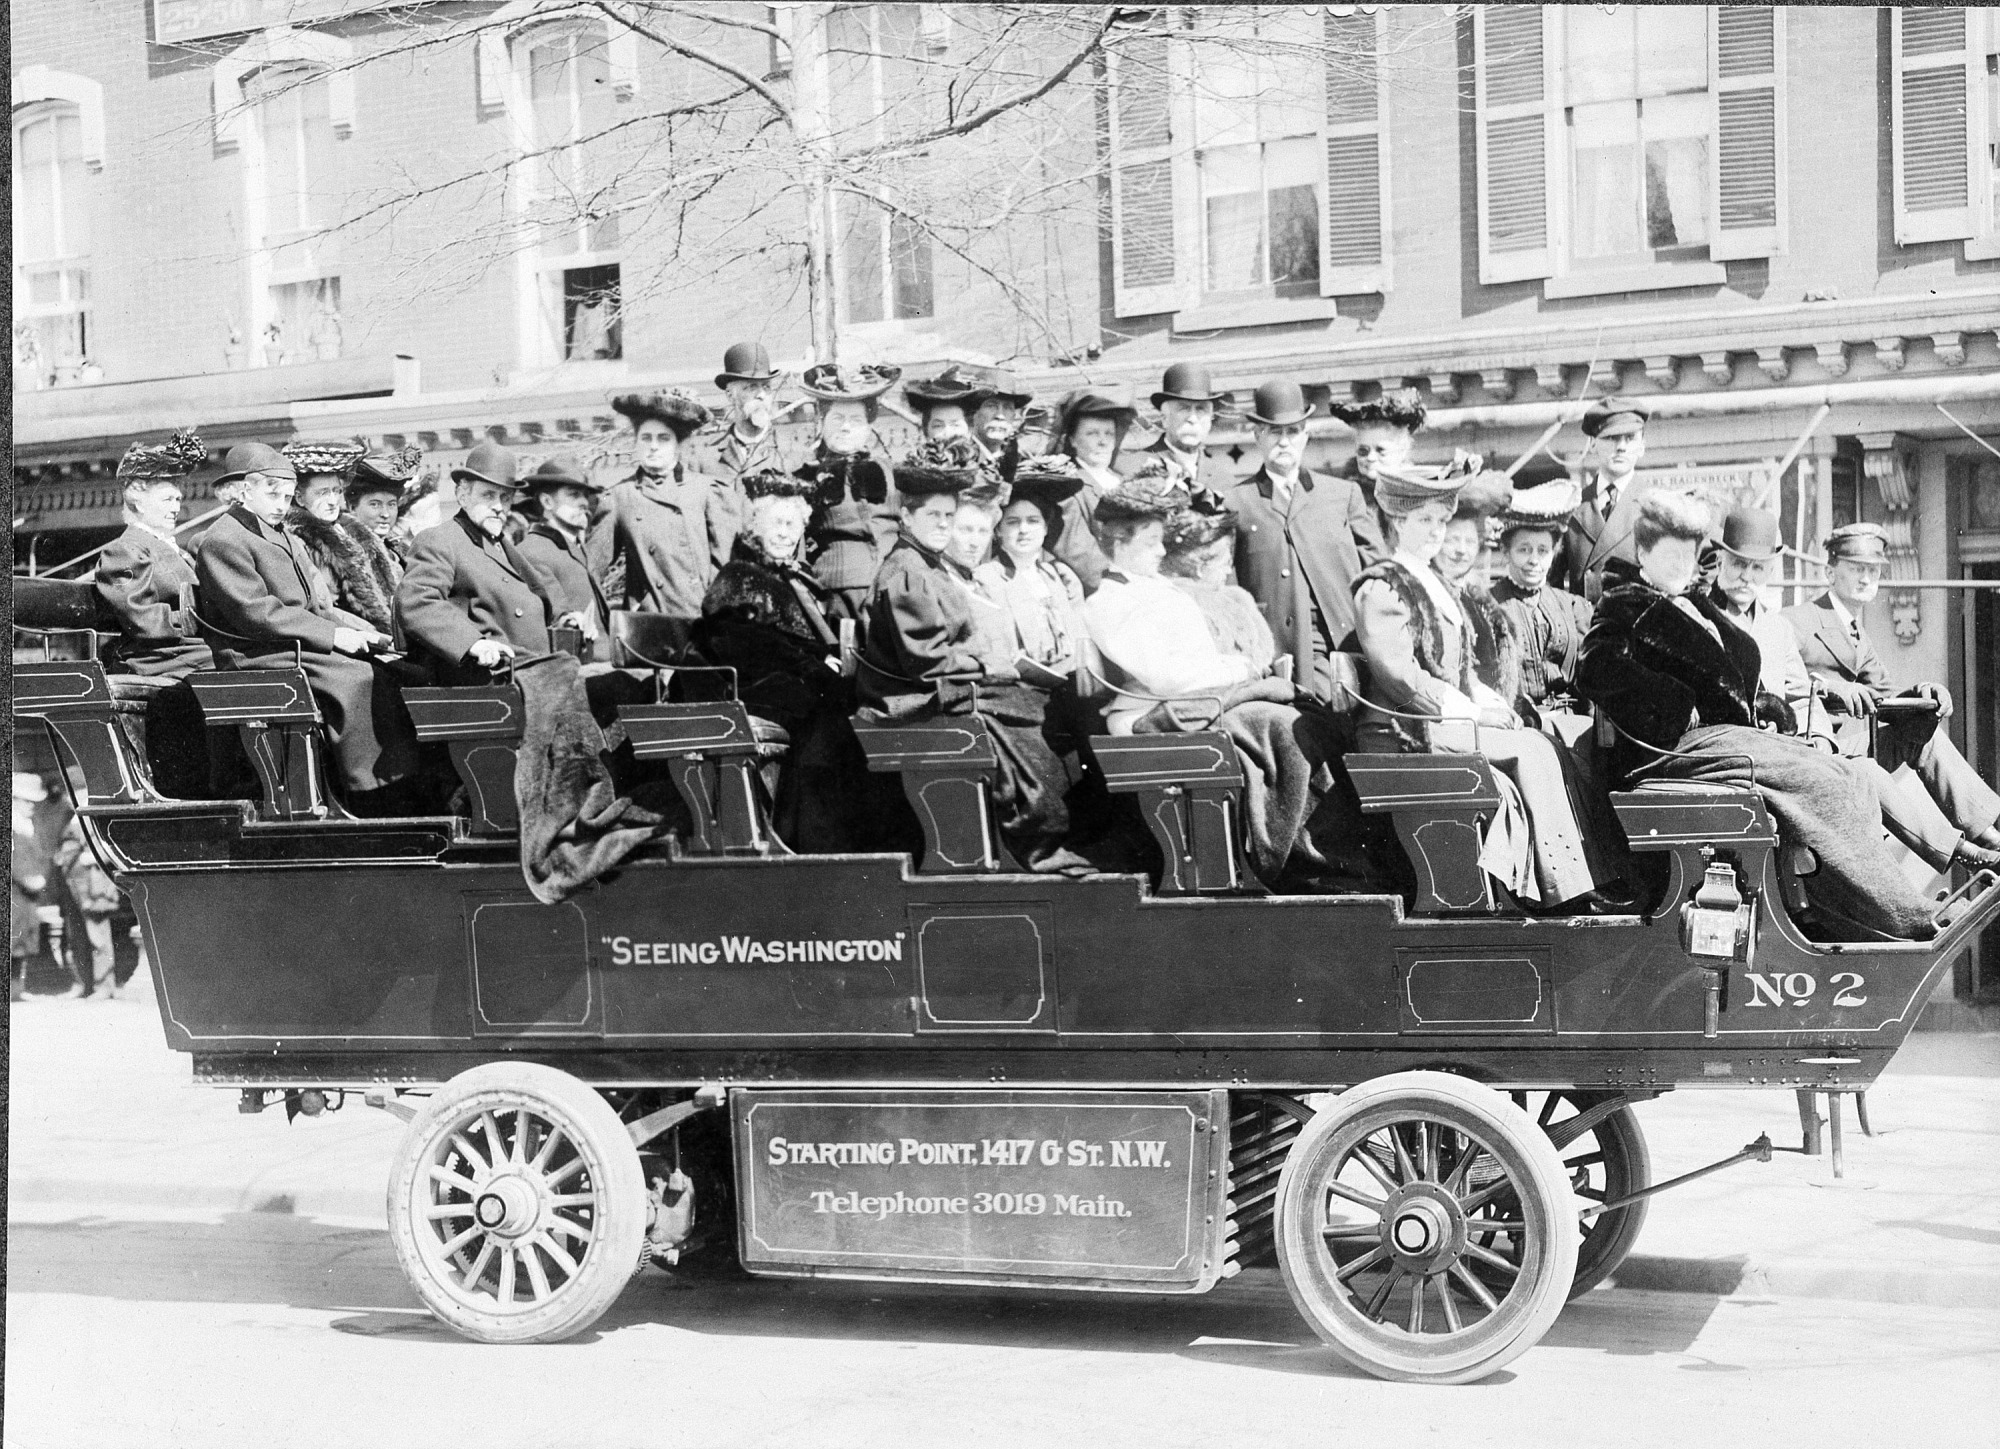 1906 Sightseeing Bus, by Unknown, 1906, Smithsonian Archives - History Div, 72-8601.